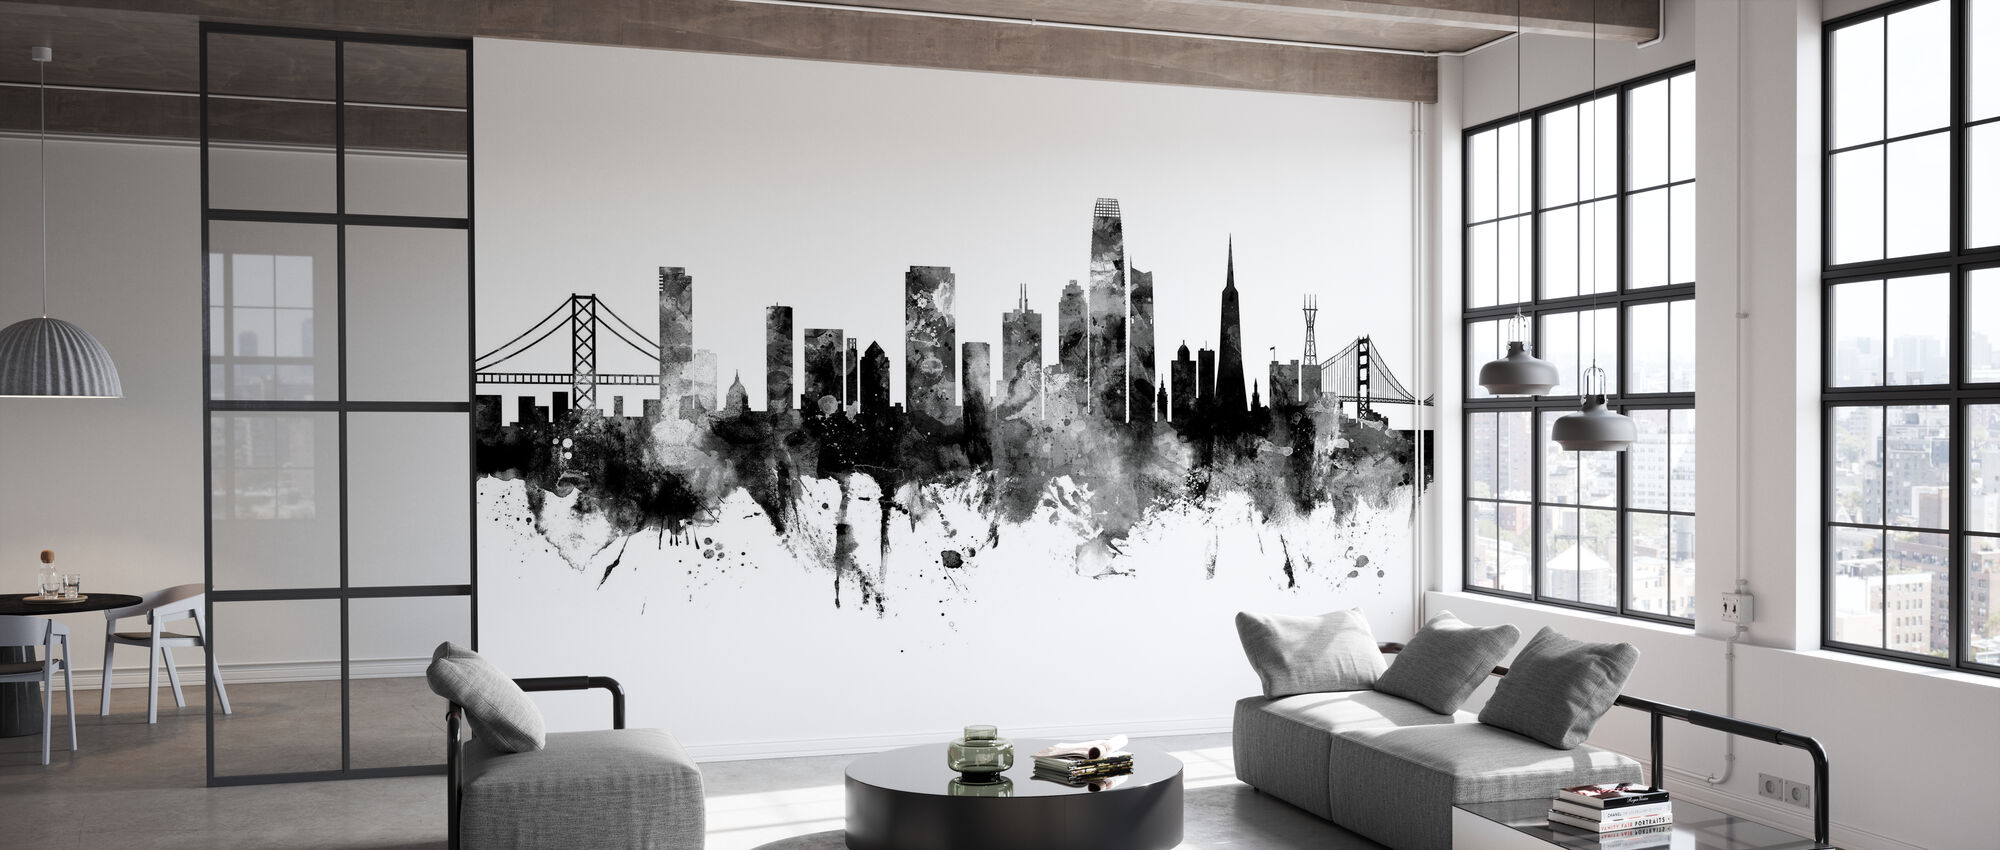 San Francisco California Skyline - Tapet - Kontor